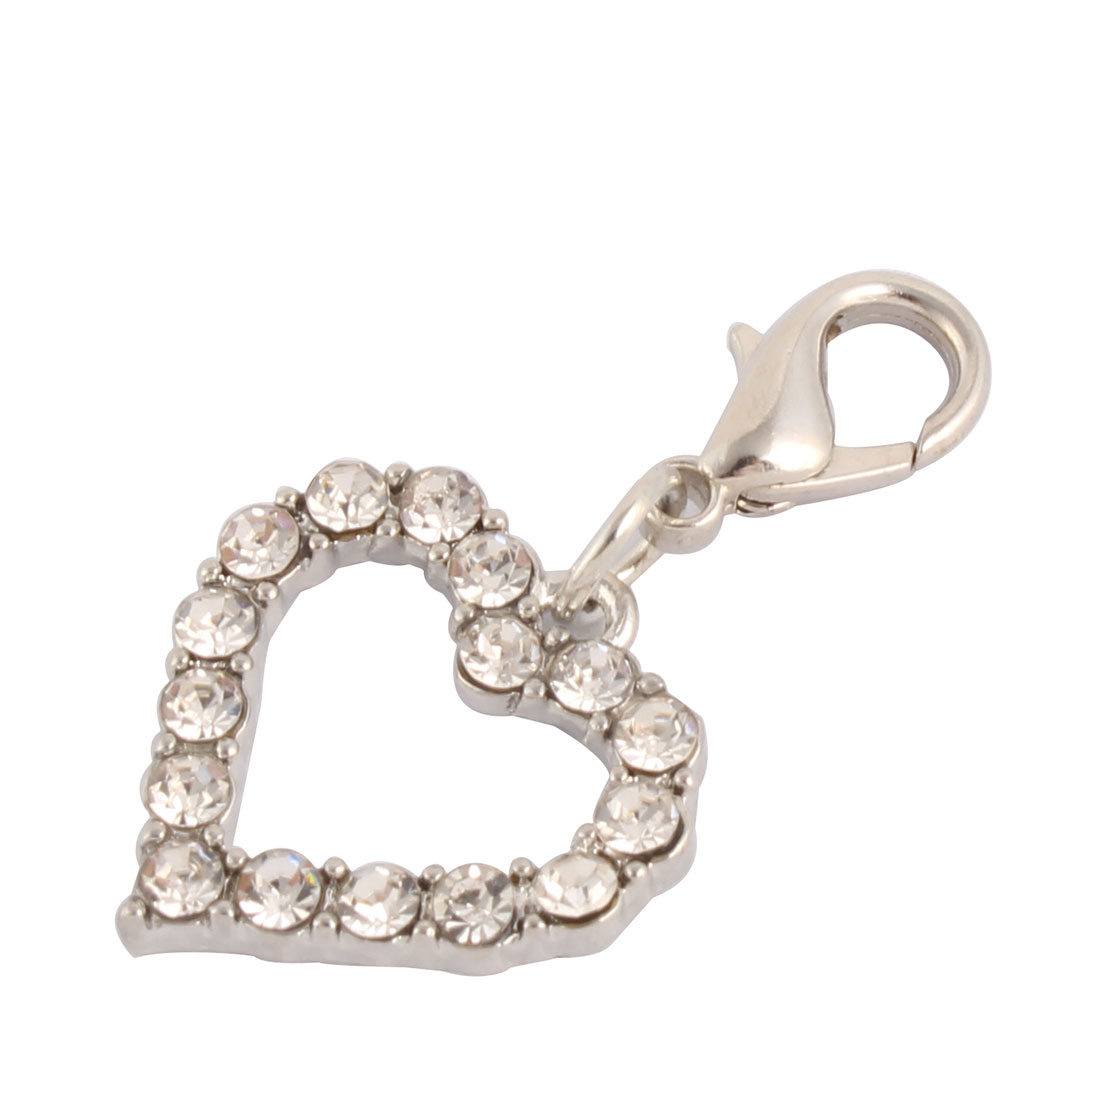 Party Rhinestone Mount Dog Ornament Pet Necklace Clasp Heart Charm Pendent Silver Tone